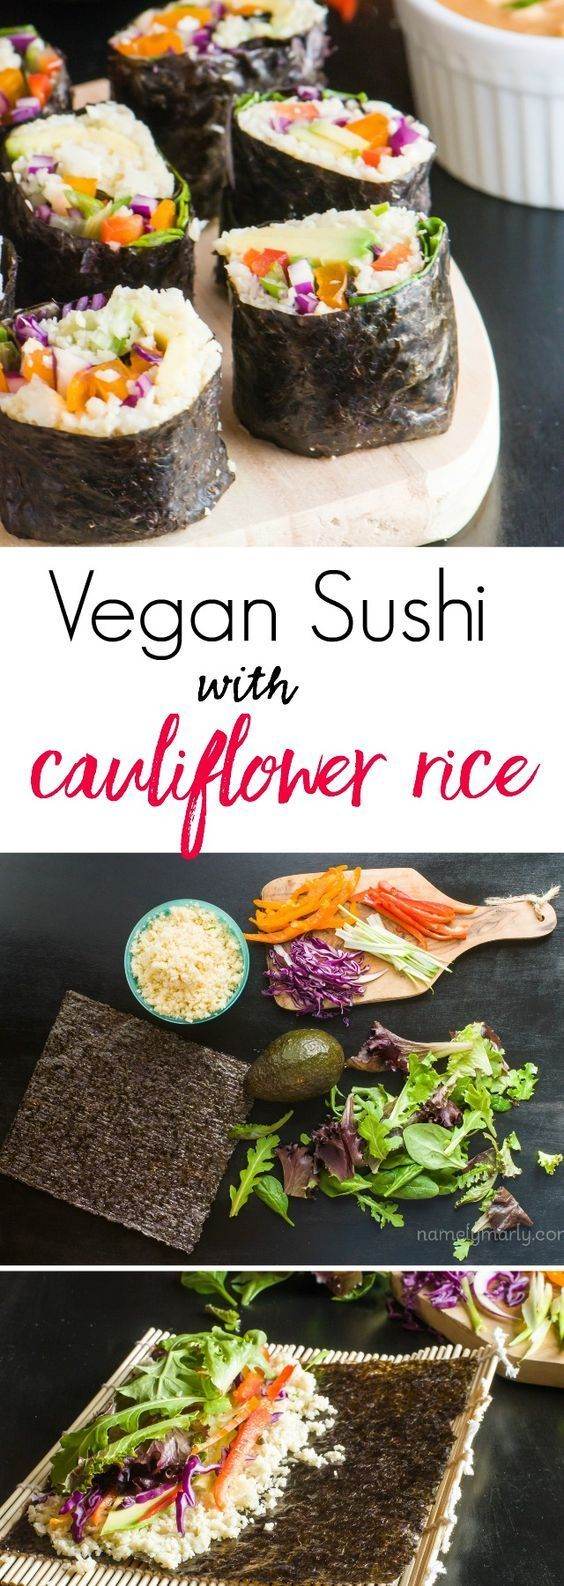 Vegan Sushi Cauliflower Rice